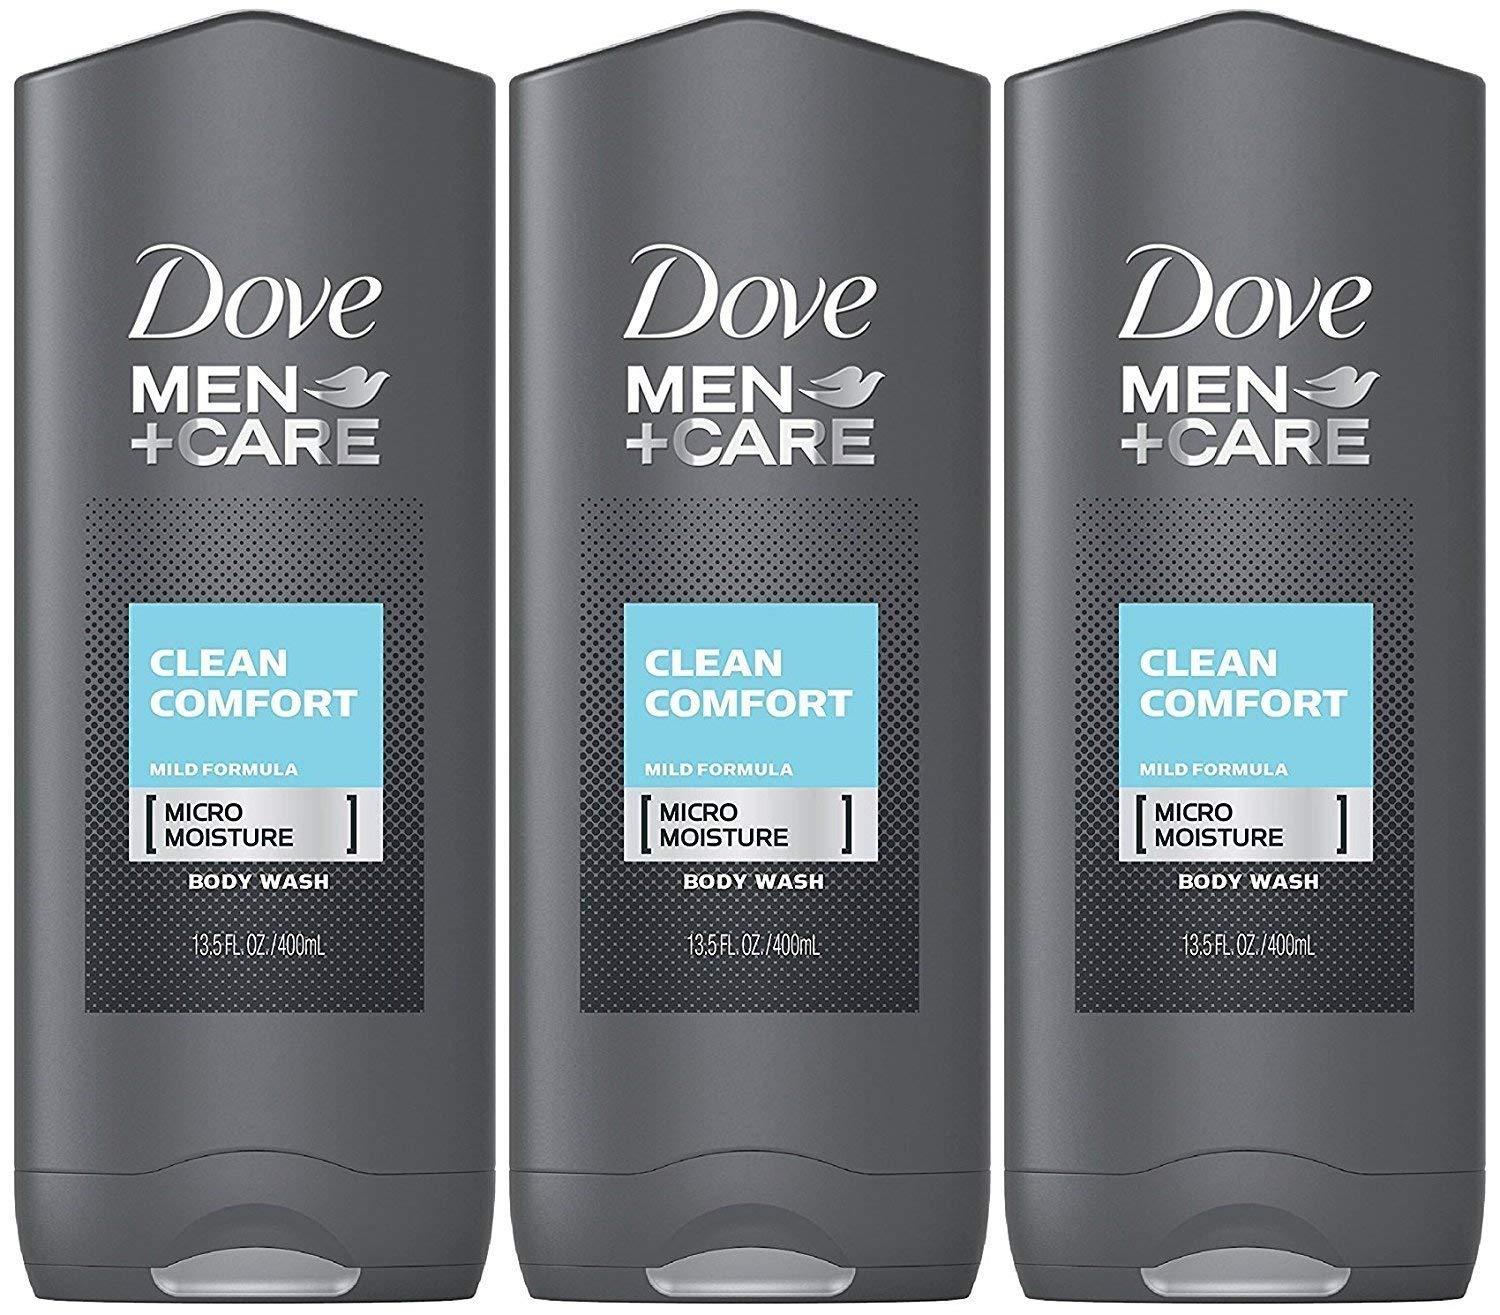 Dove Men Care Body & Face Wash Clean Comfort 13.50 oz Pack of 3